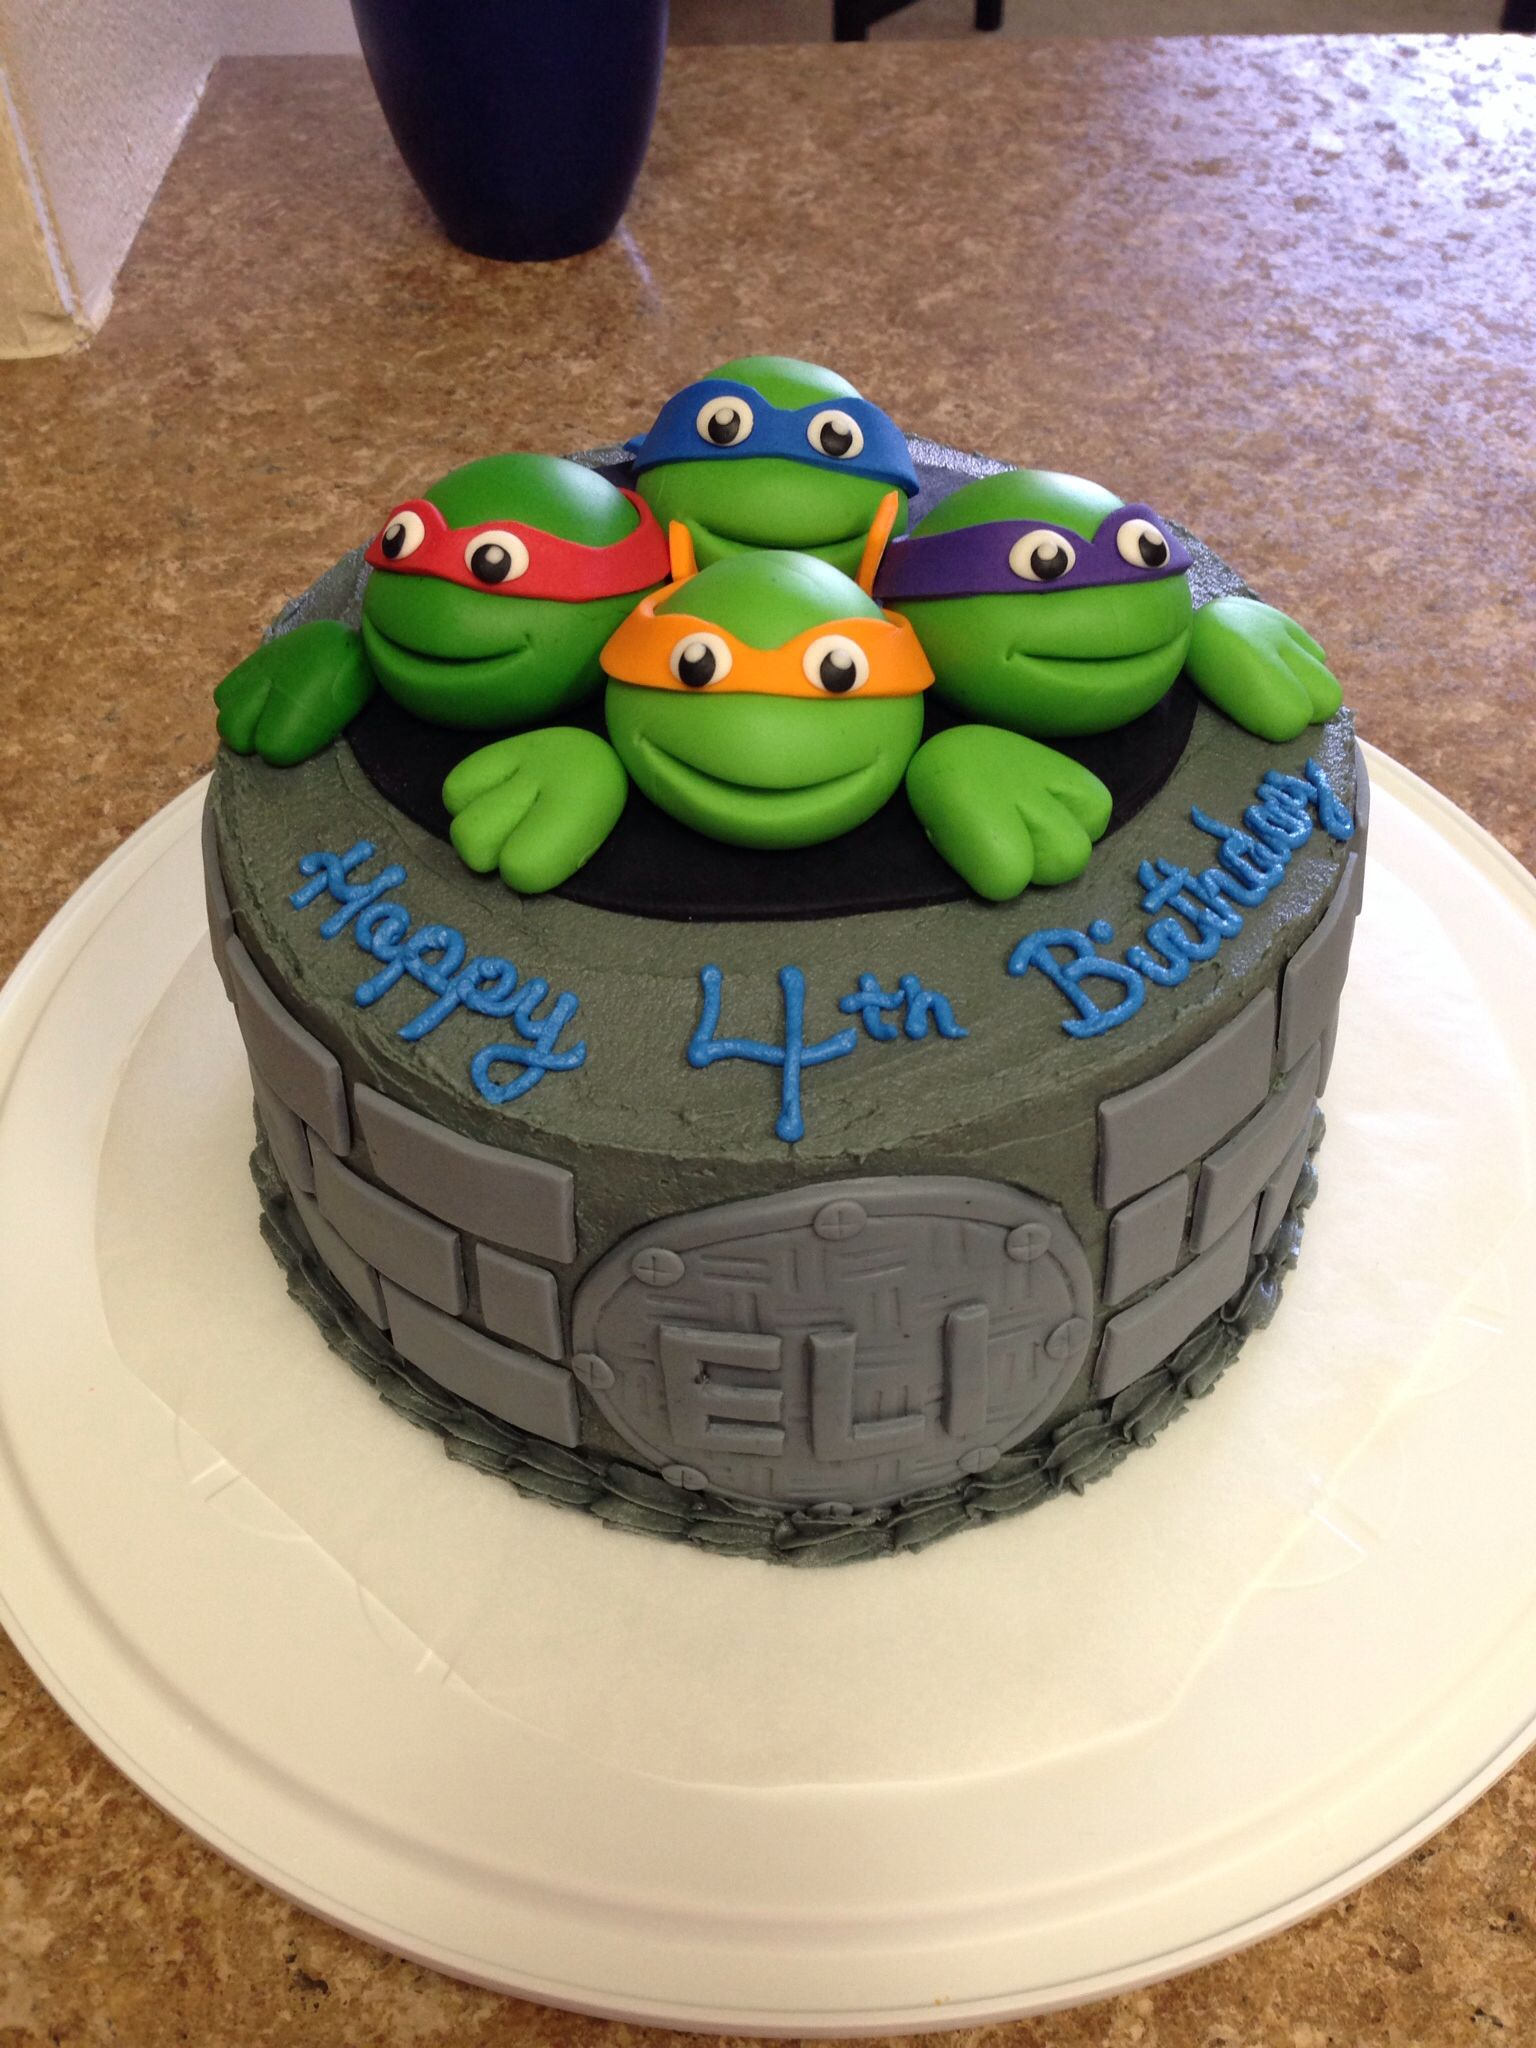 Tmnt Cake I Made For My Son S 4th Birthday I Used Fondant For The